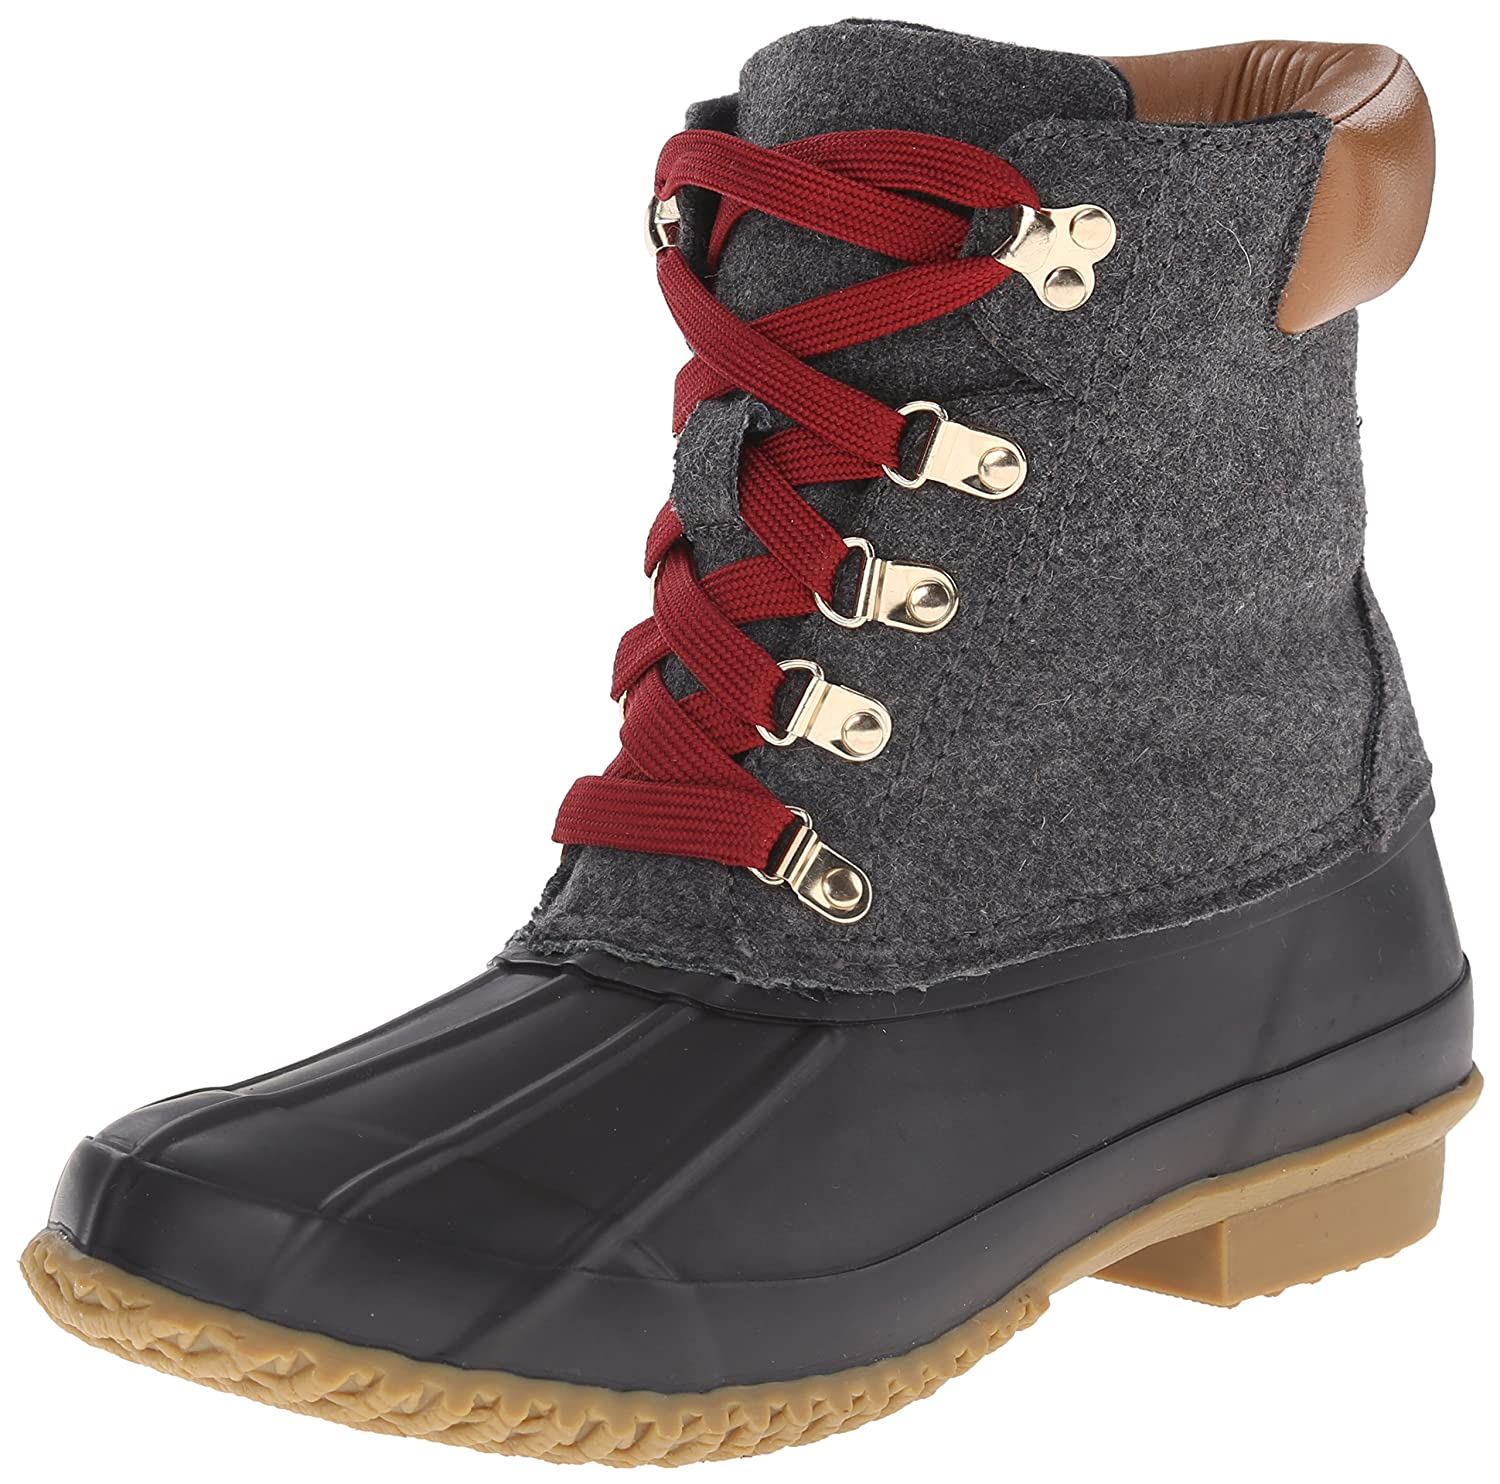 Joie Women's Delyth Snow Boot